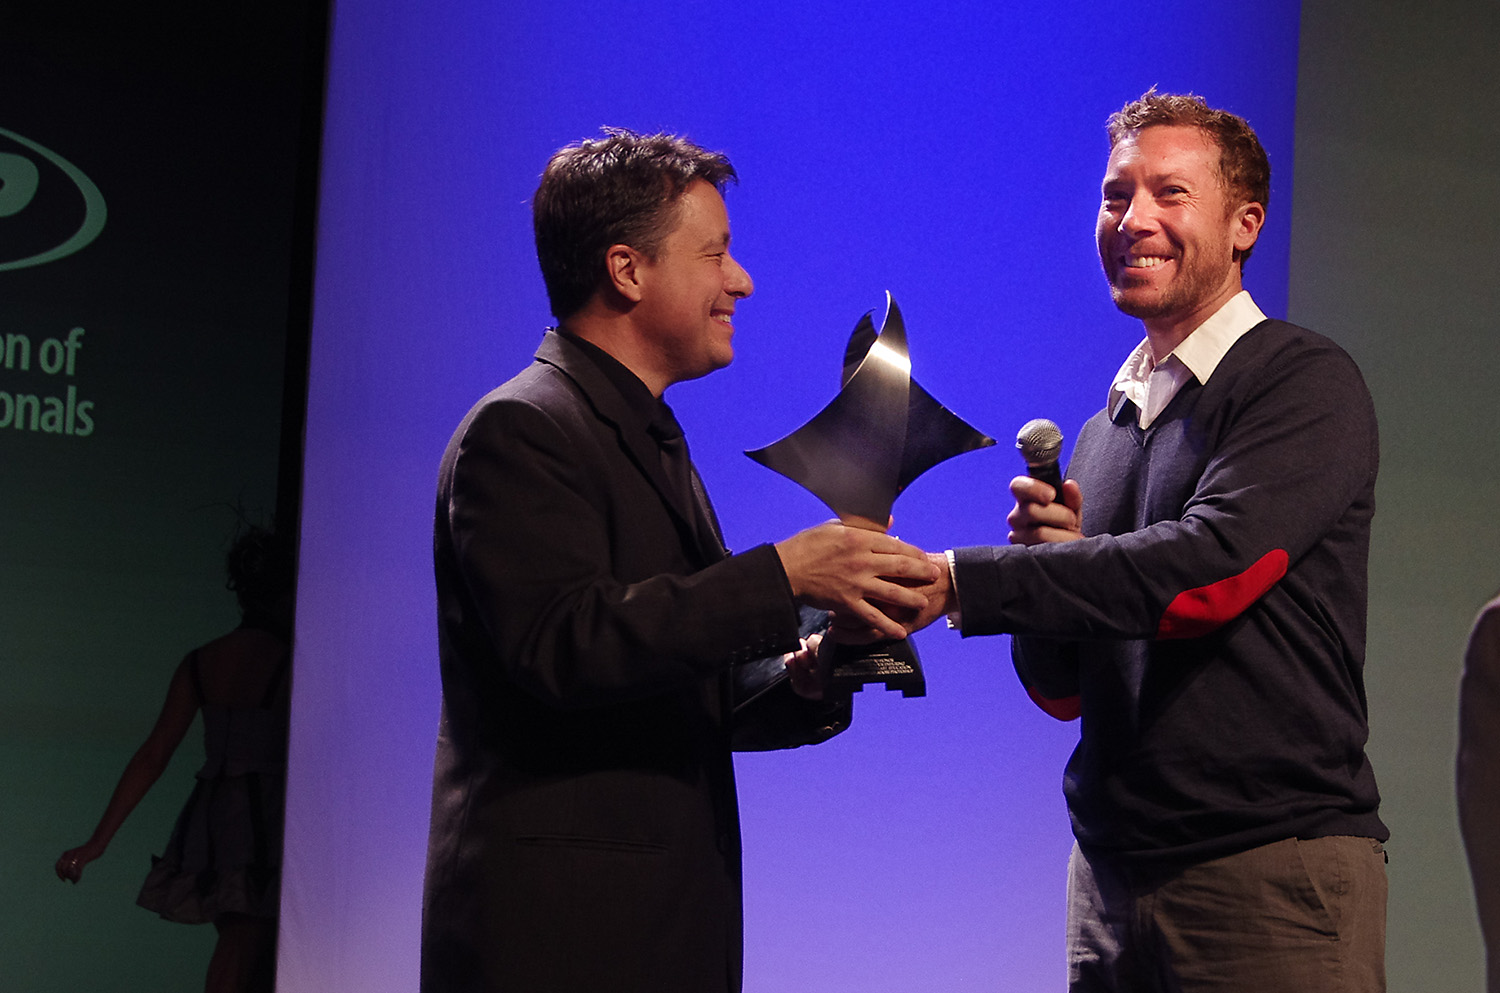 Bryan on stage to accept his award at the Photoshop World opening keynote.